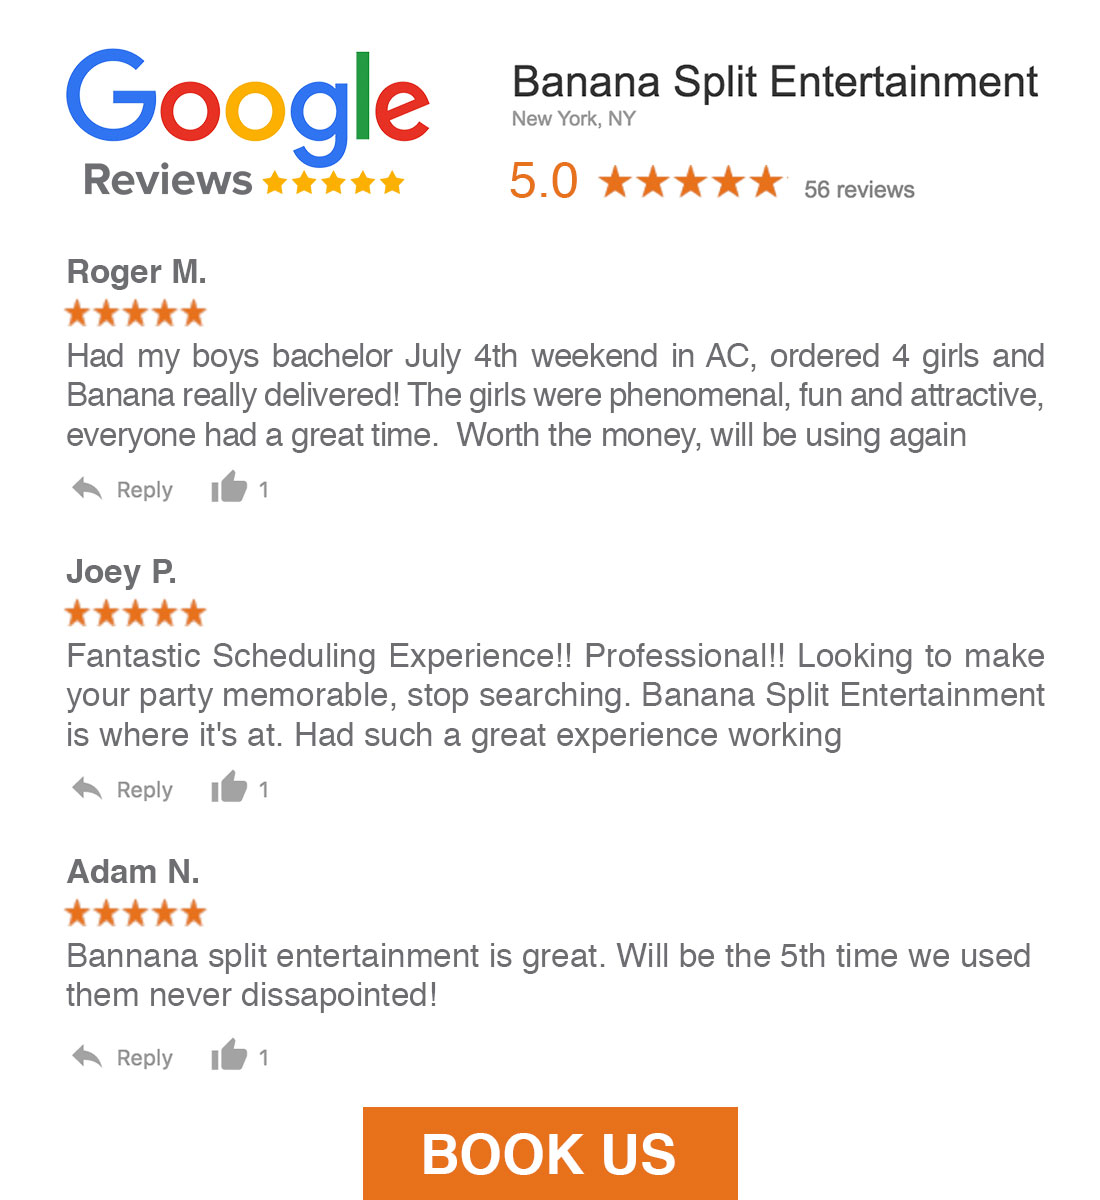 Banana Split Entertainment Google Reviews